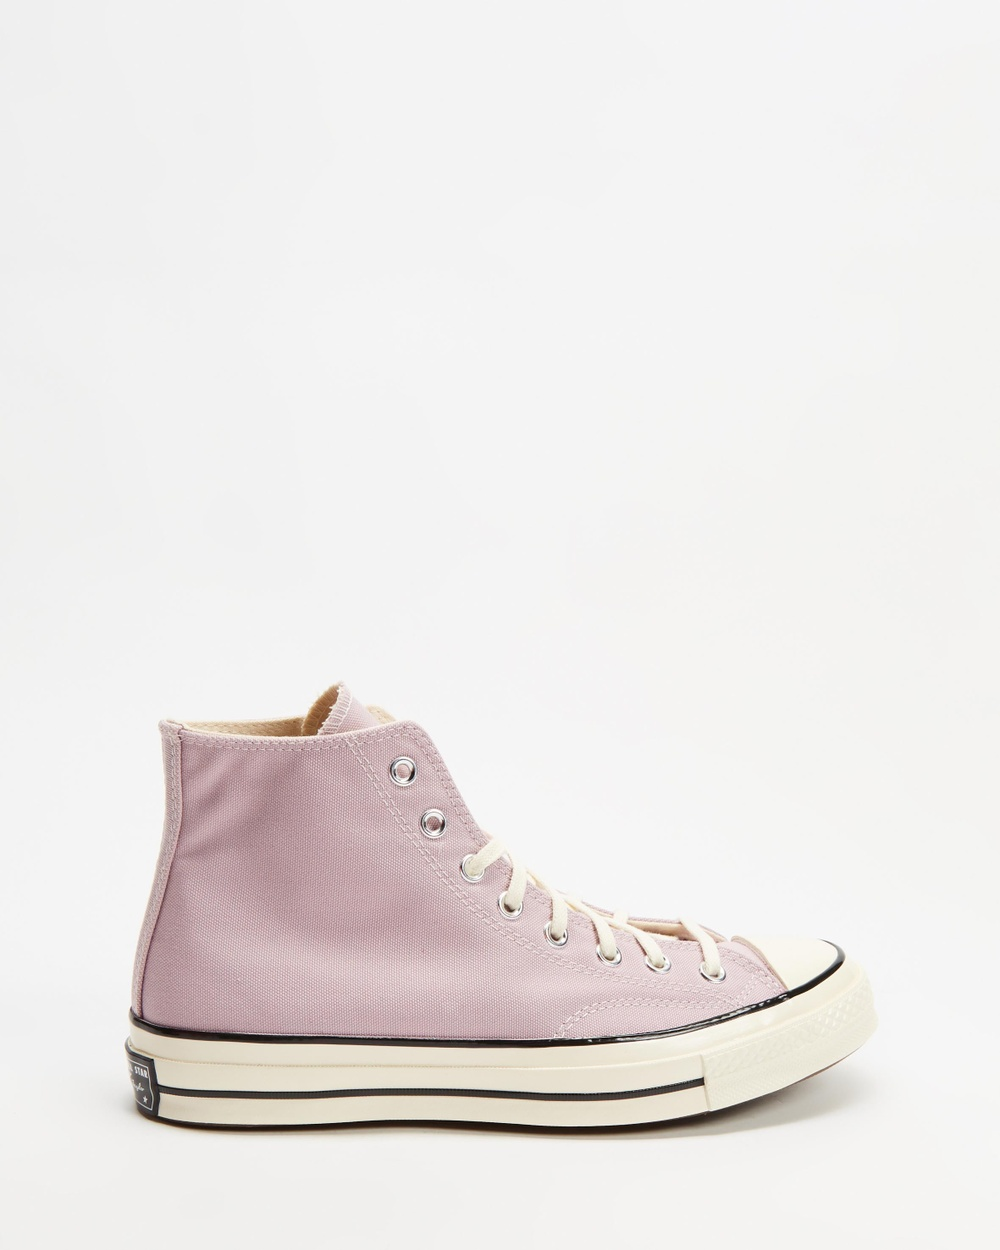 Converse Chuck Taylor All Star 70 Recycled Canvas High Tops Unisex Sneakers Himalayan Salt, Egret & Black High-Tops